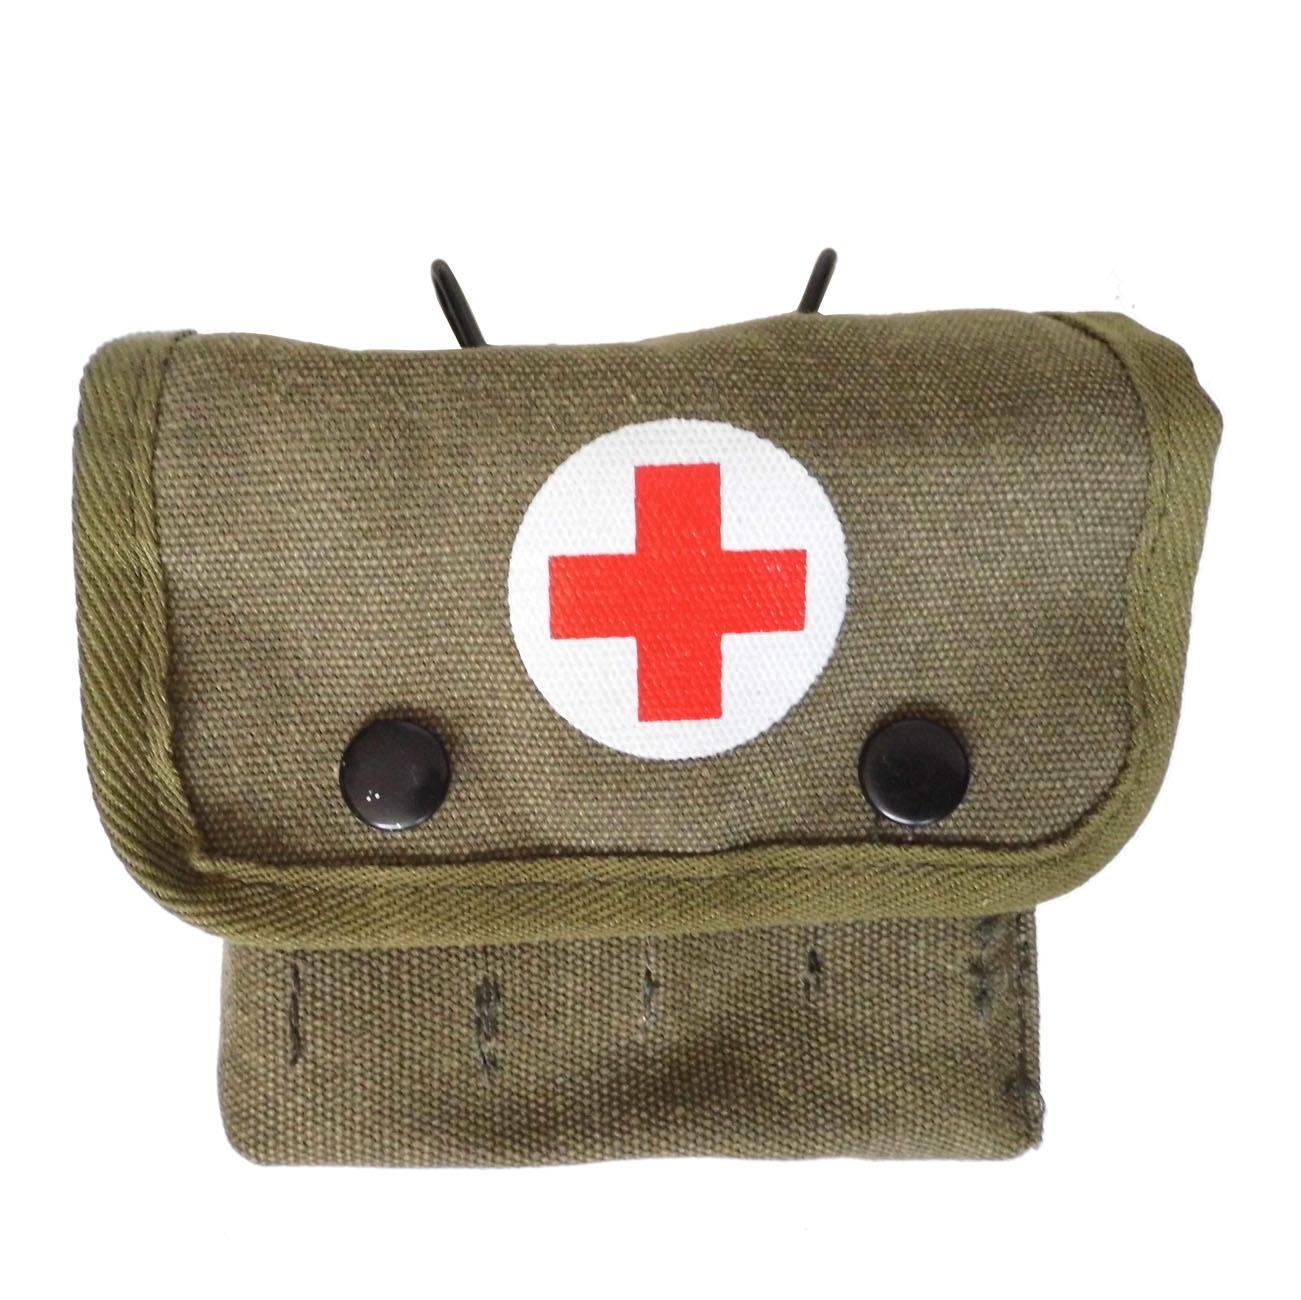 Accurrate Reproduction M2 Jungle First Aid Kit Pouch Bag 1943 Soldier Gear